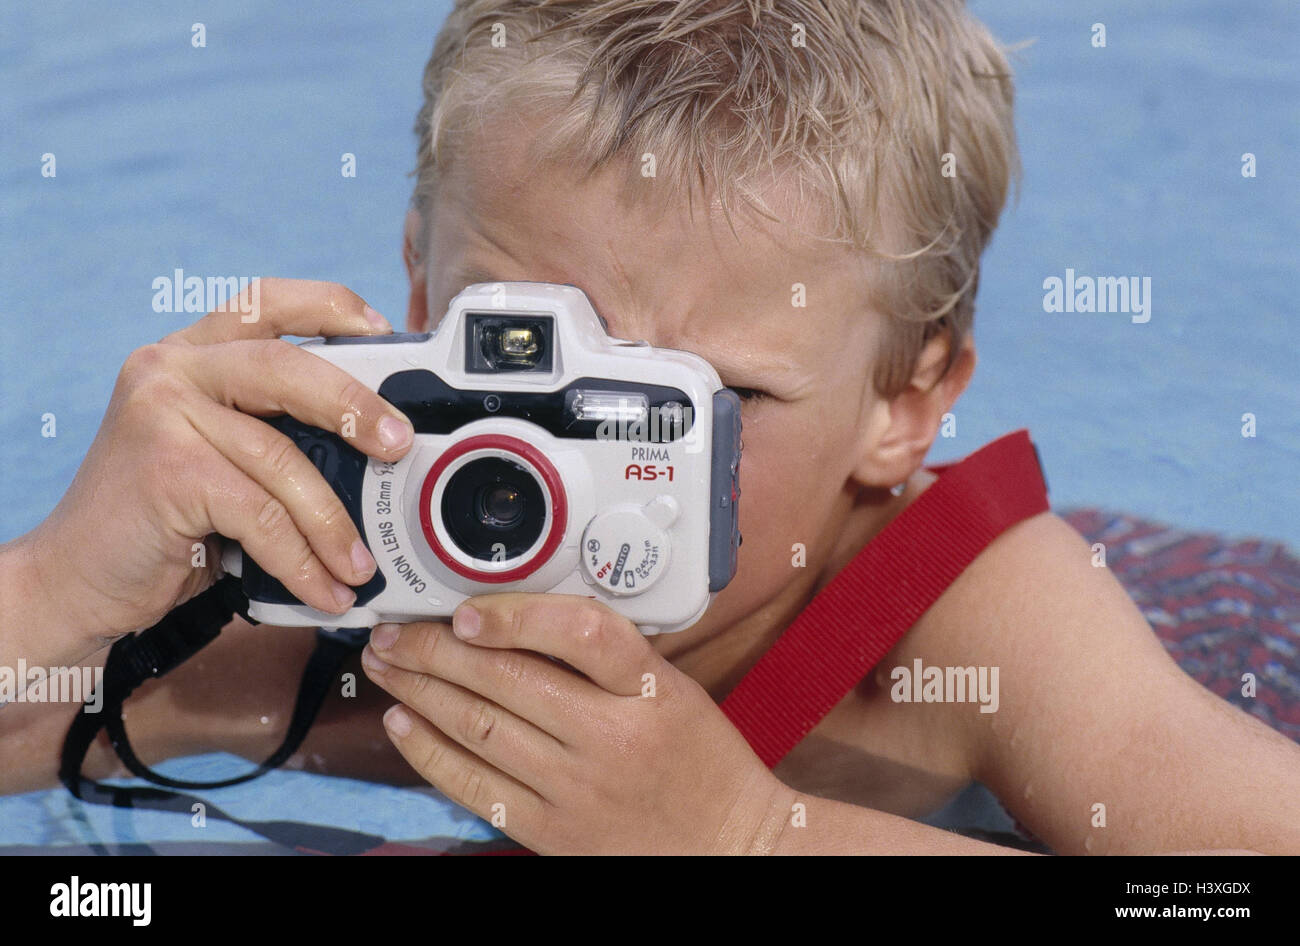 Pool cymbal margin boy camera portrait model released swimming